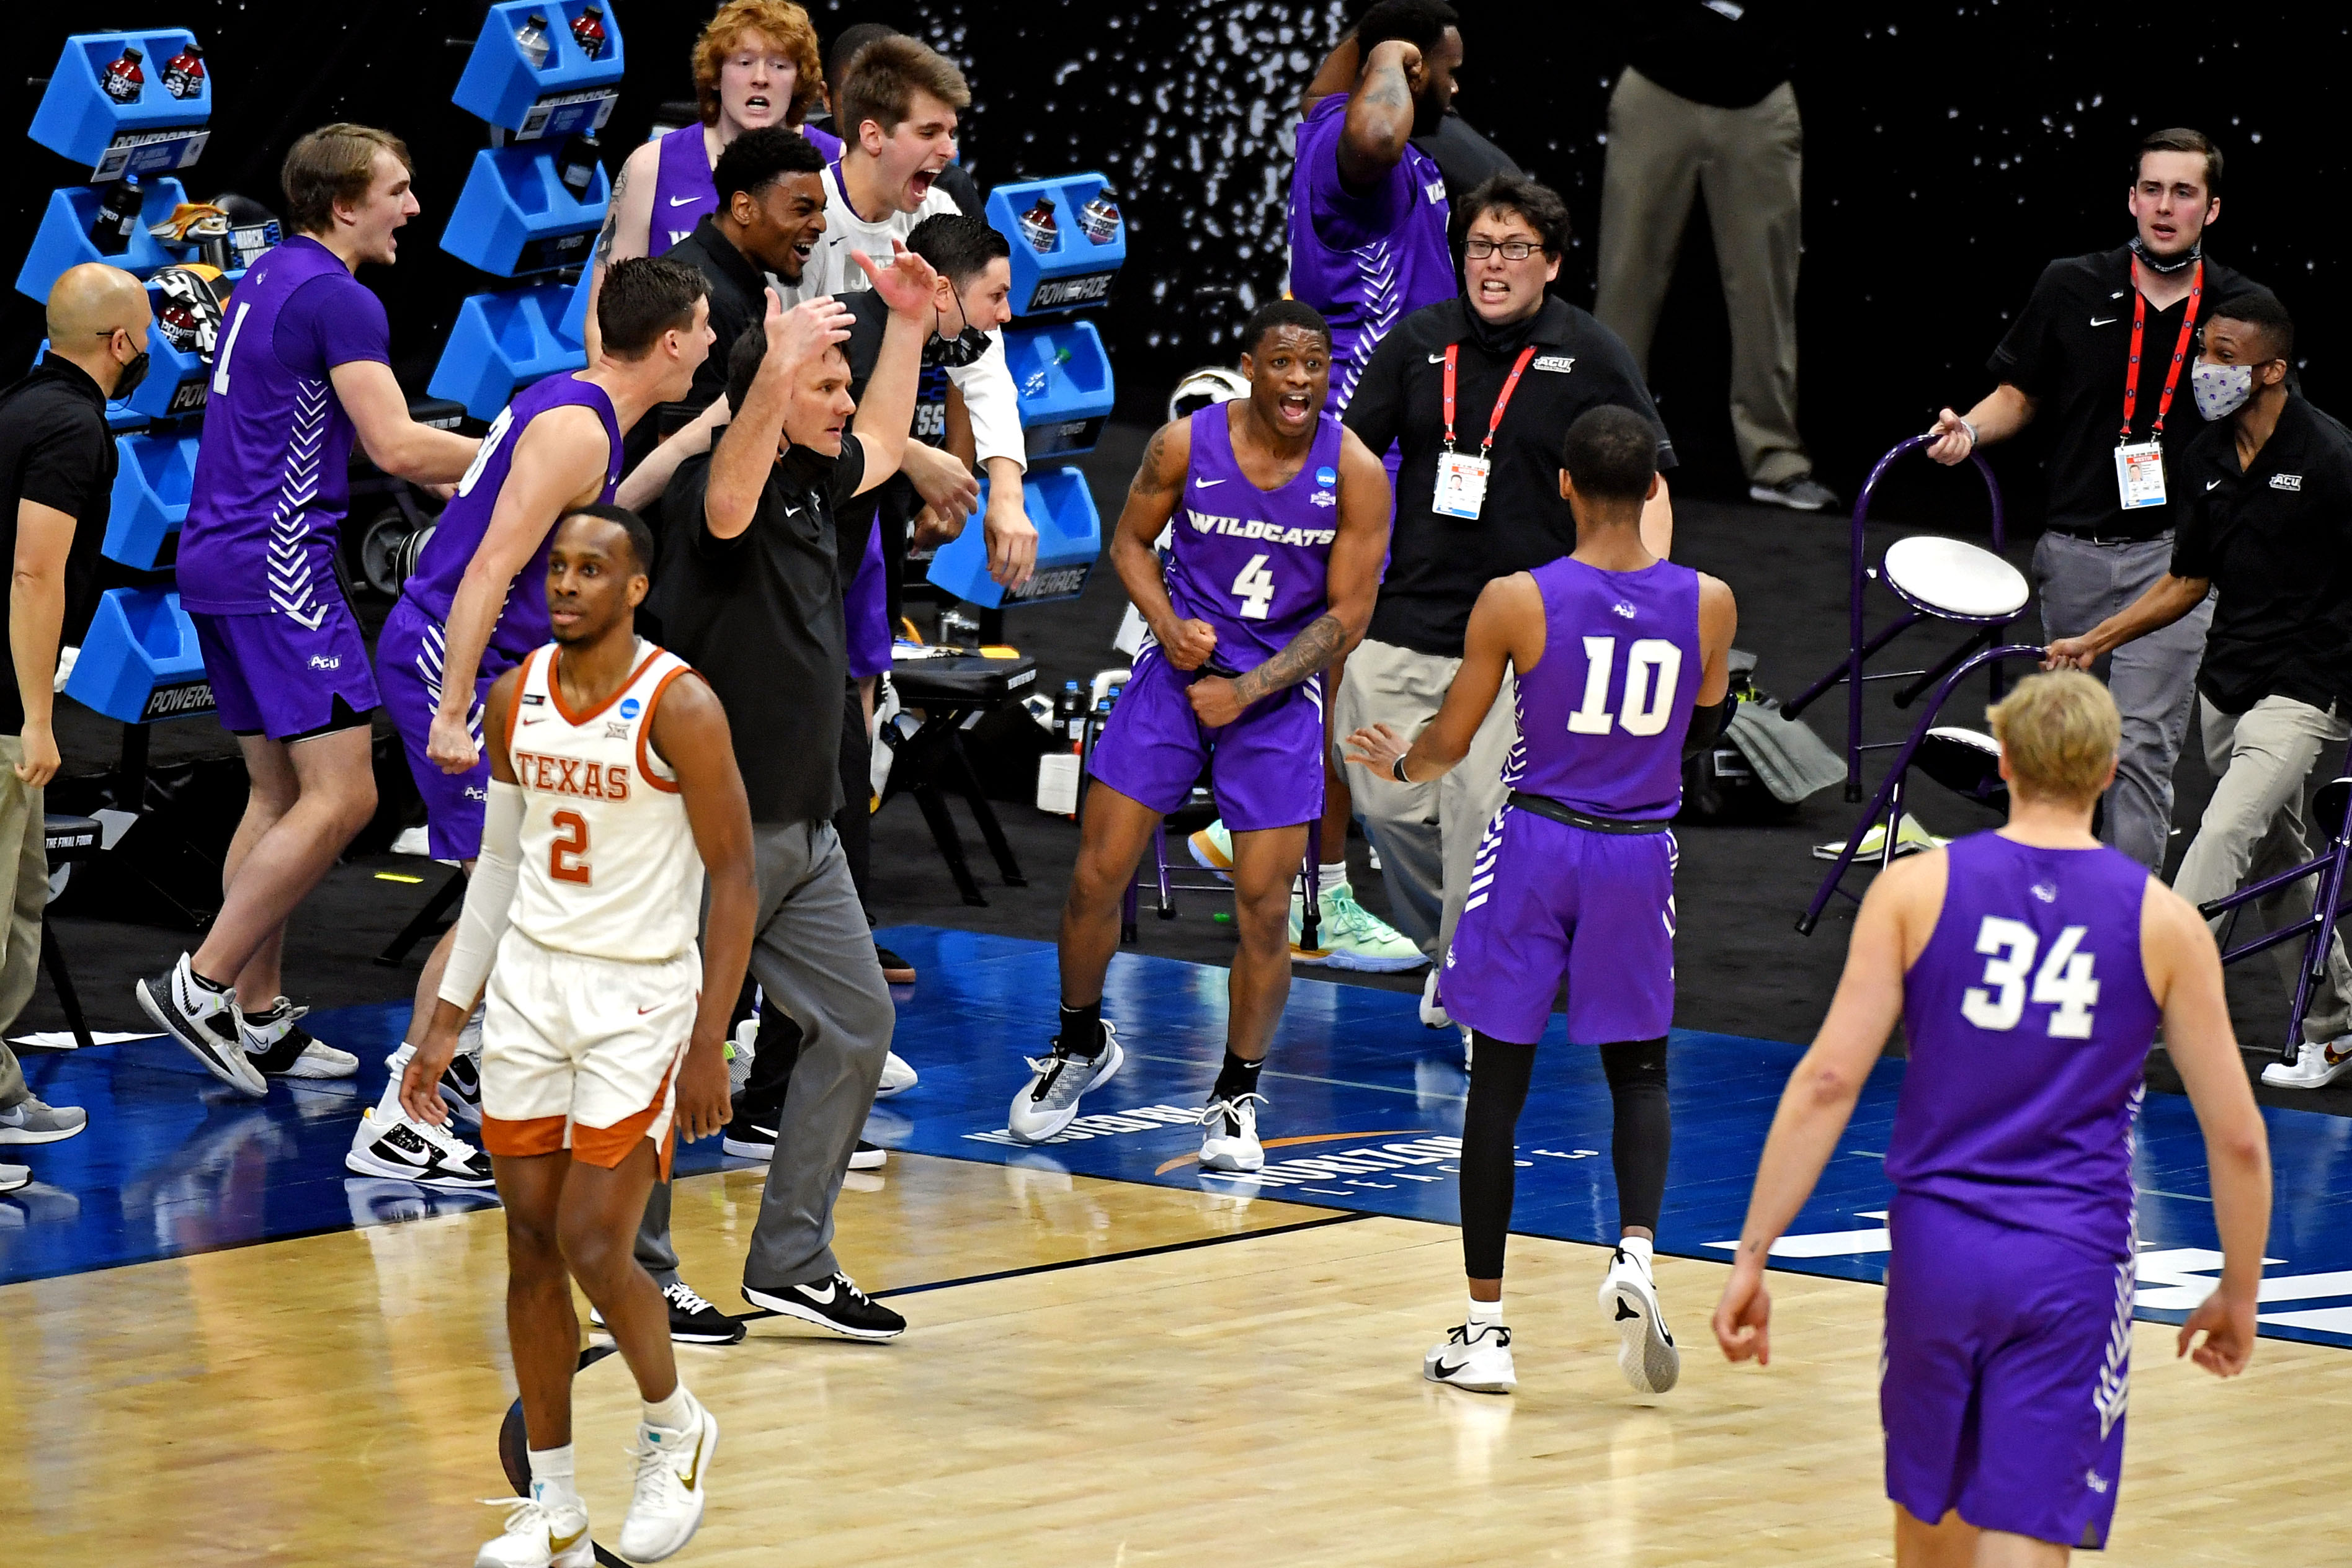 The Abilene Christian Wildcats bench reacts after a play during the second half against the Texas Longhorns in the first round of the 2021 NCAA Tournament at Lucas Oil Stadium.